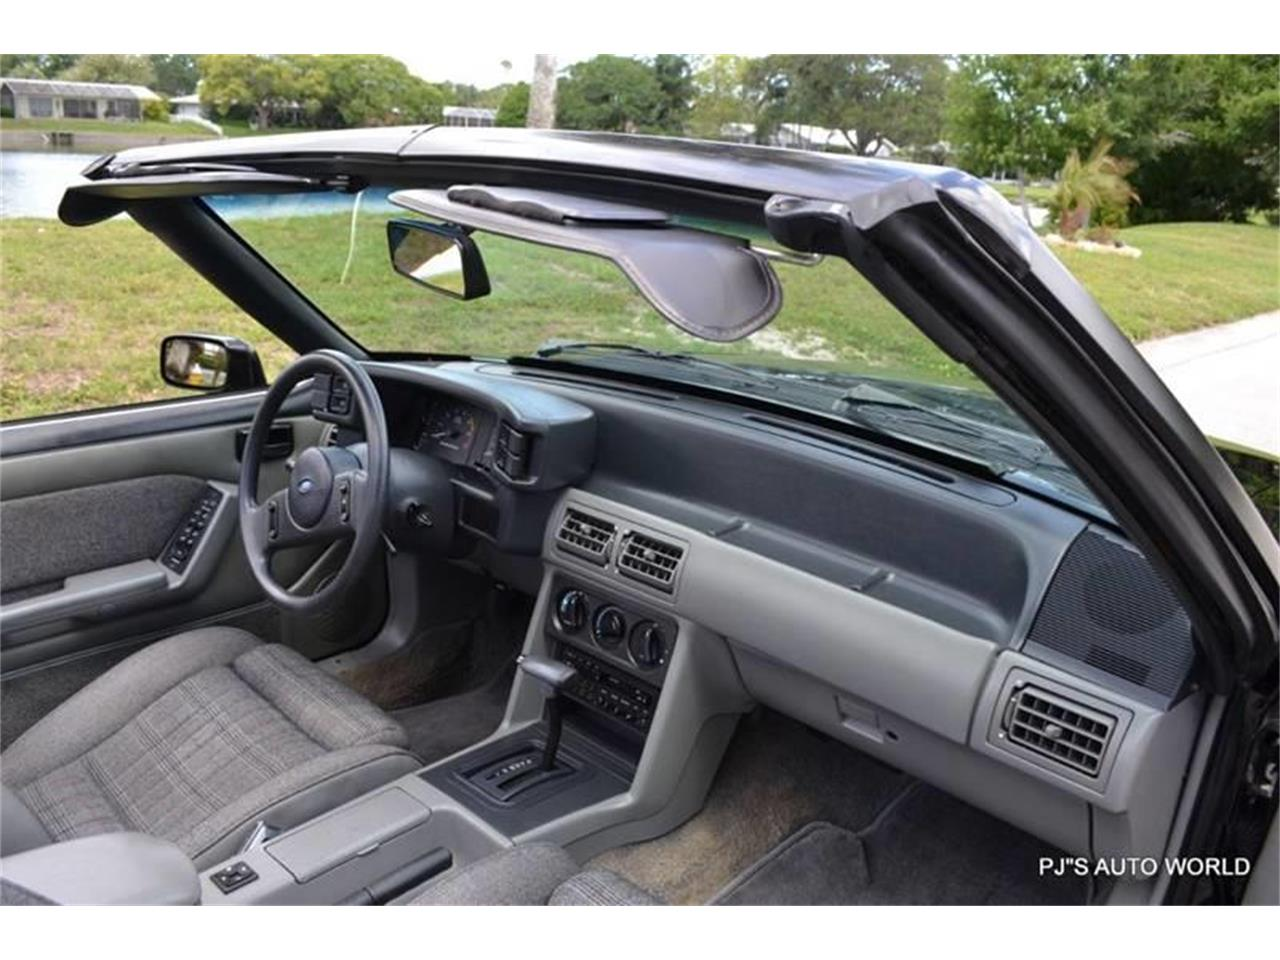 Large Picture of 1989 Mustang located in Florida - $17,900.00 - NGI8